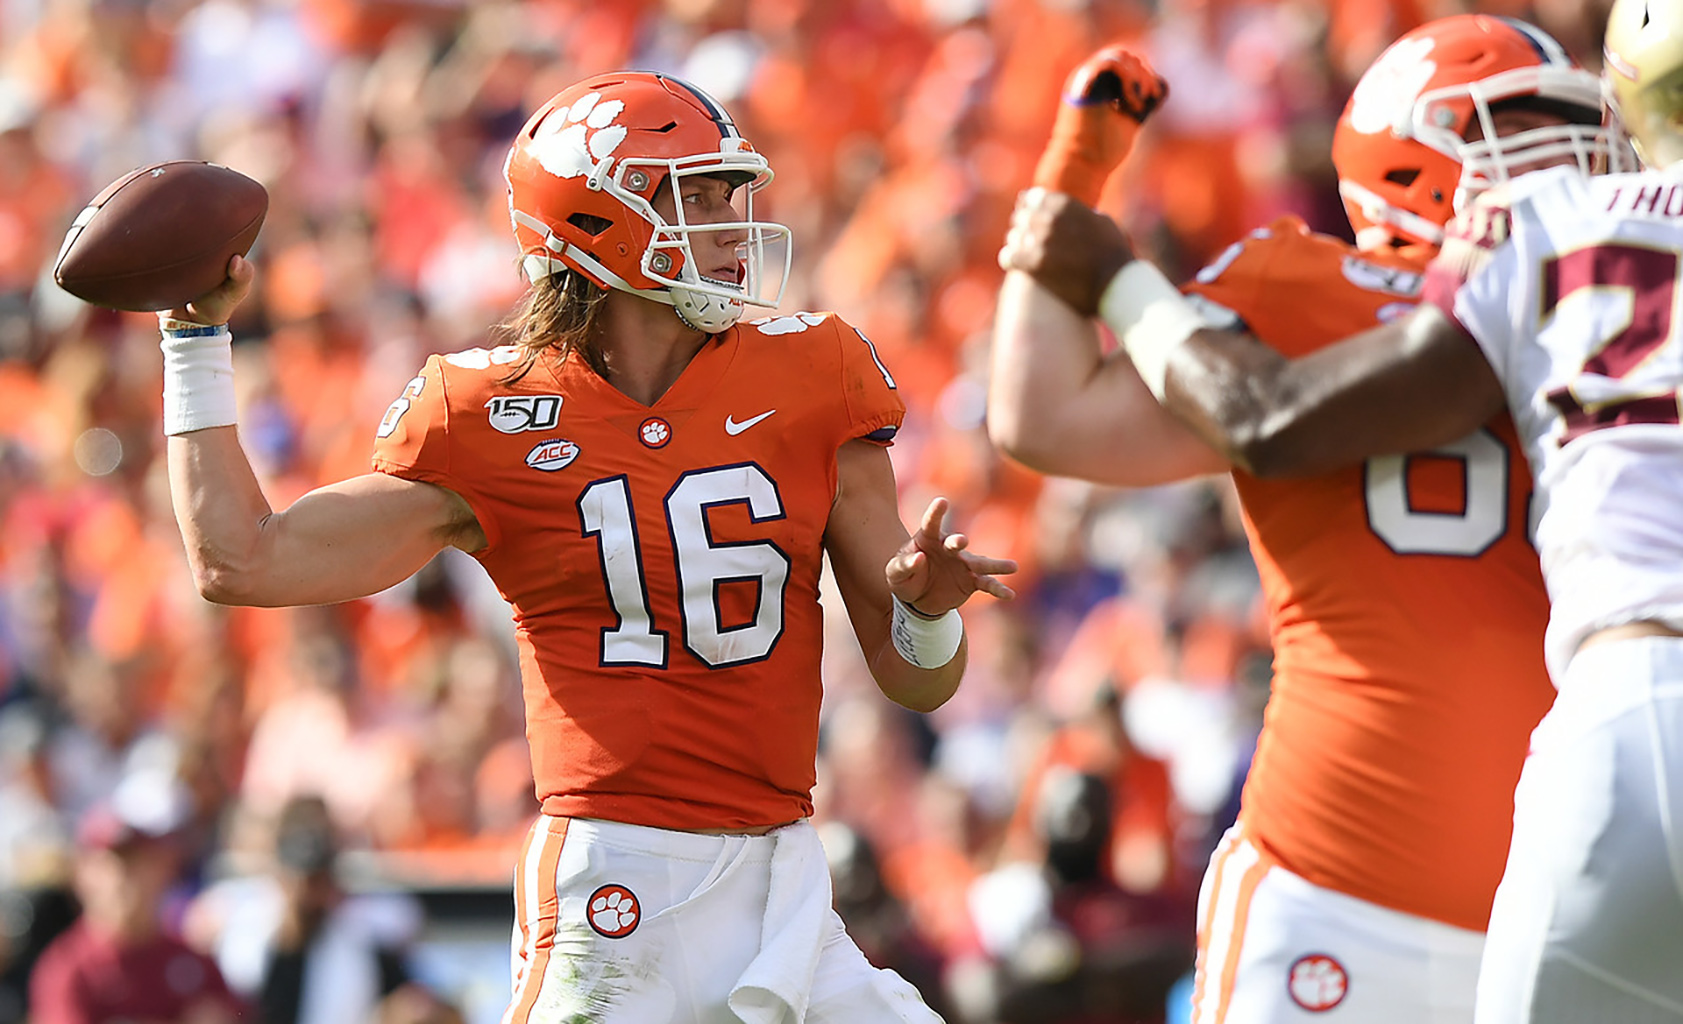 Clemson S Revised 2020 Football Schedule Announced The Clemson Insider